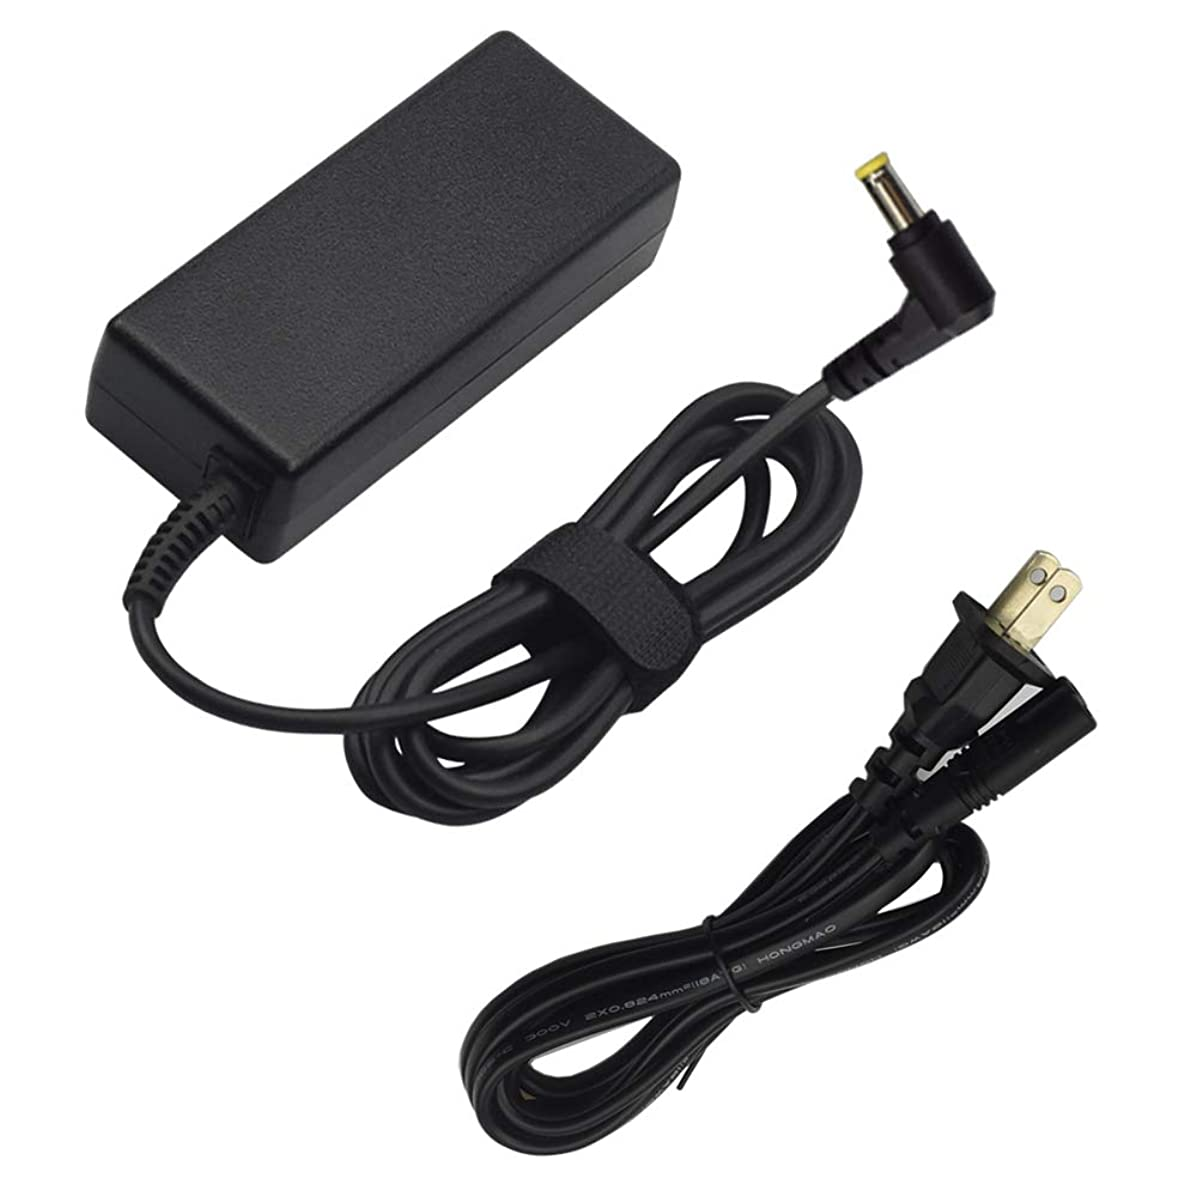 [UL Listed] Dexpt AC Charger Replacement for Acer Aspire 1 3 5 E15 E5-576 E5-576G A114 A315 A515 A114-31 A315-21 A315-21G A315-31 A315-51 A515-51 A515-51G A114-31-C4HH Laptop Adapter Power Supply Cord